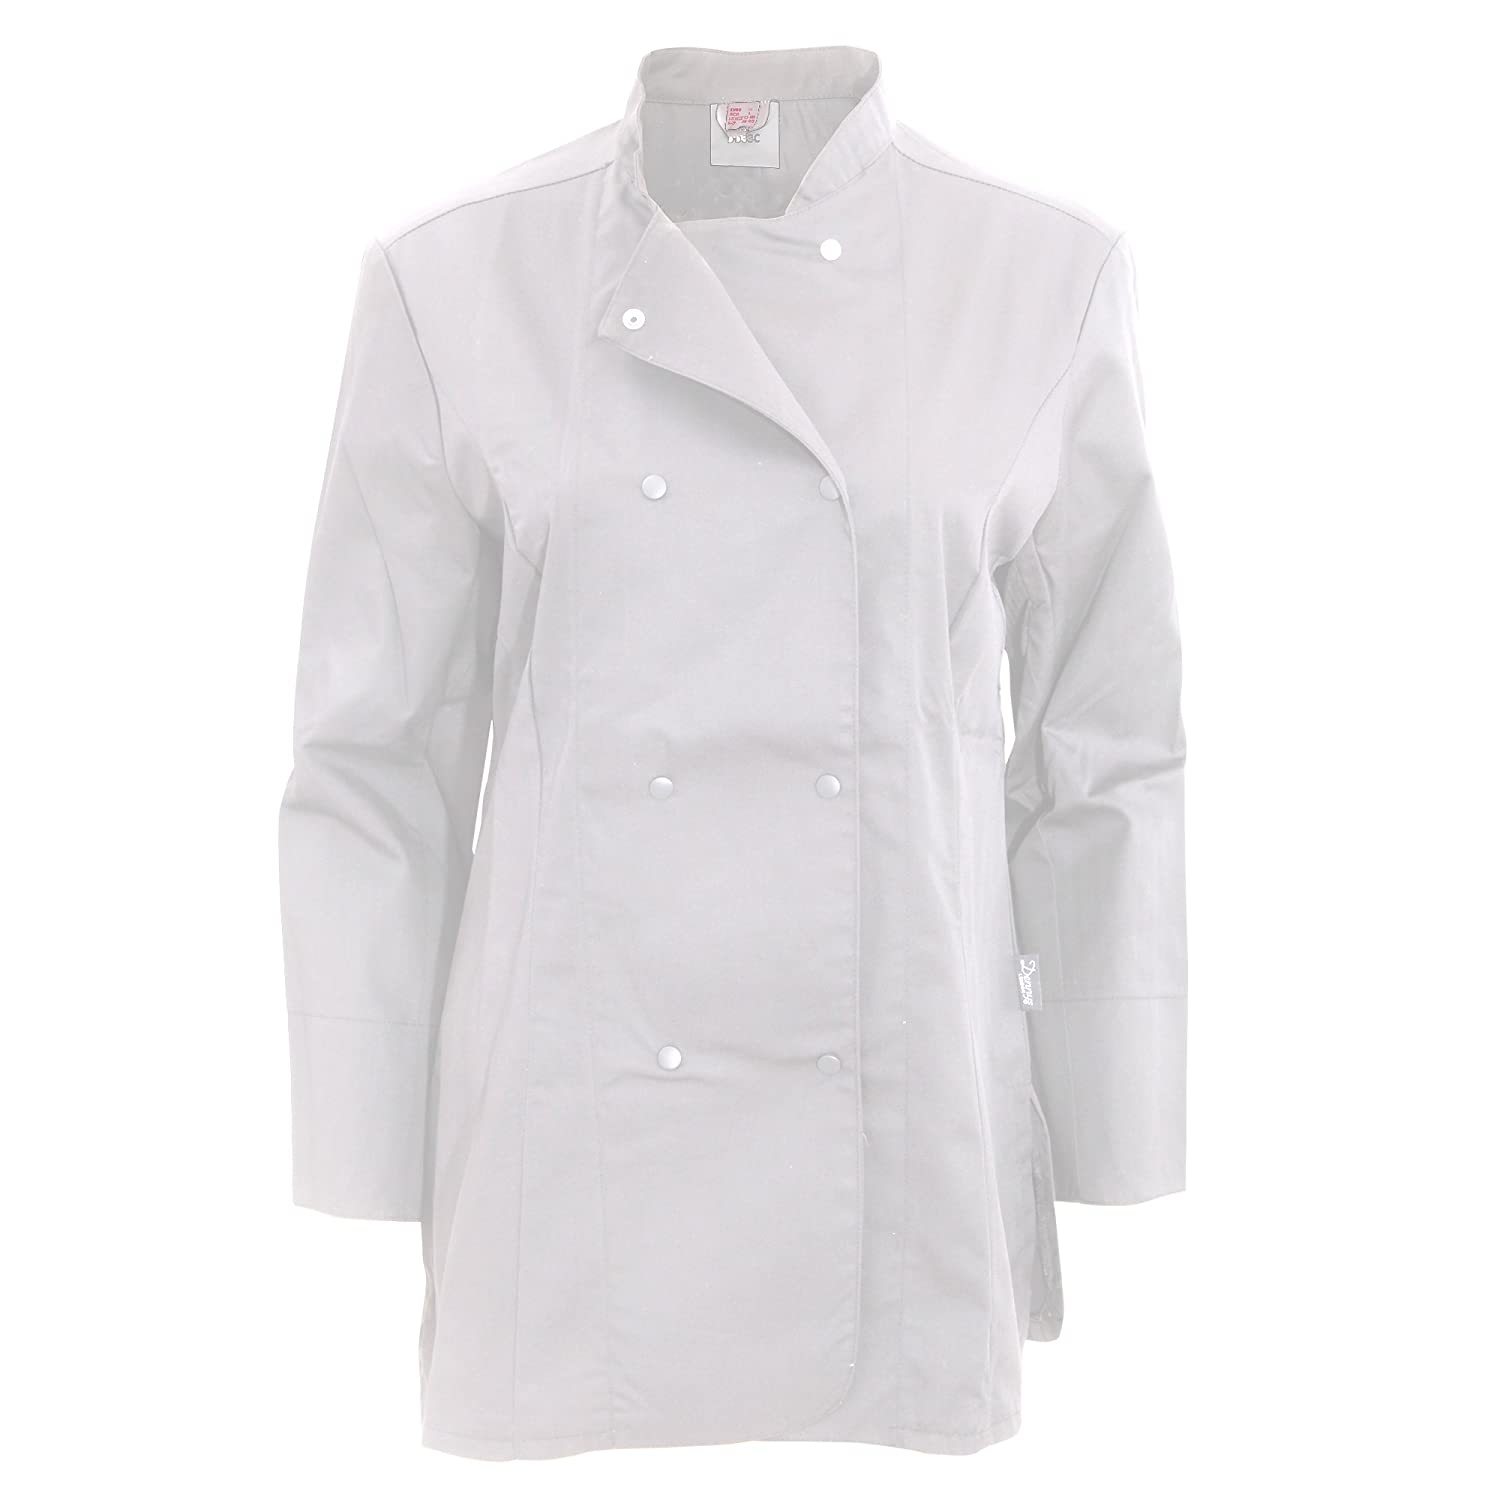 Dennys Womens/Ladies Long Sleeve Fitted Chef Jacket